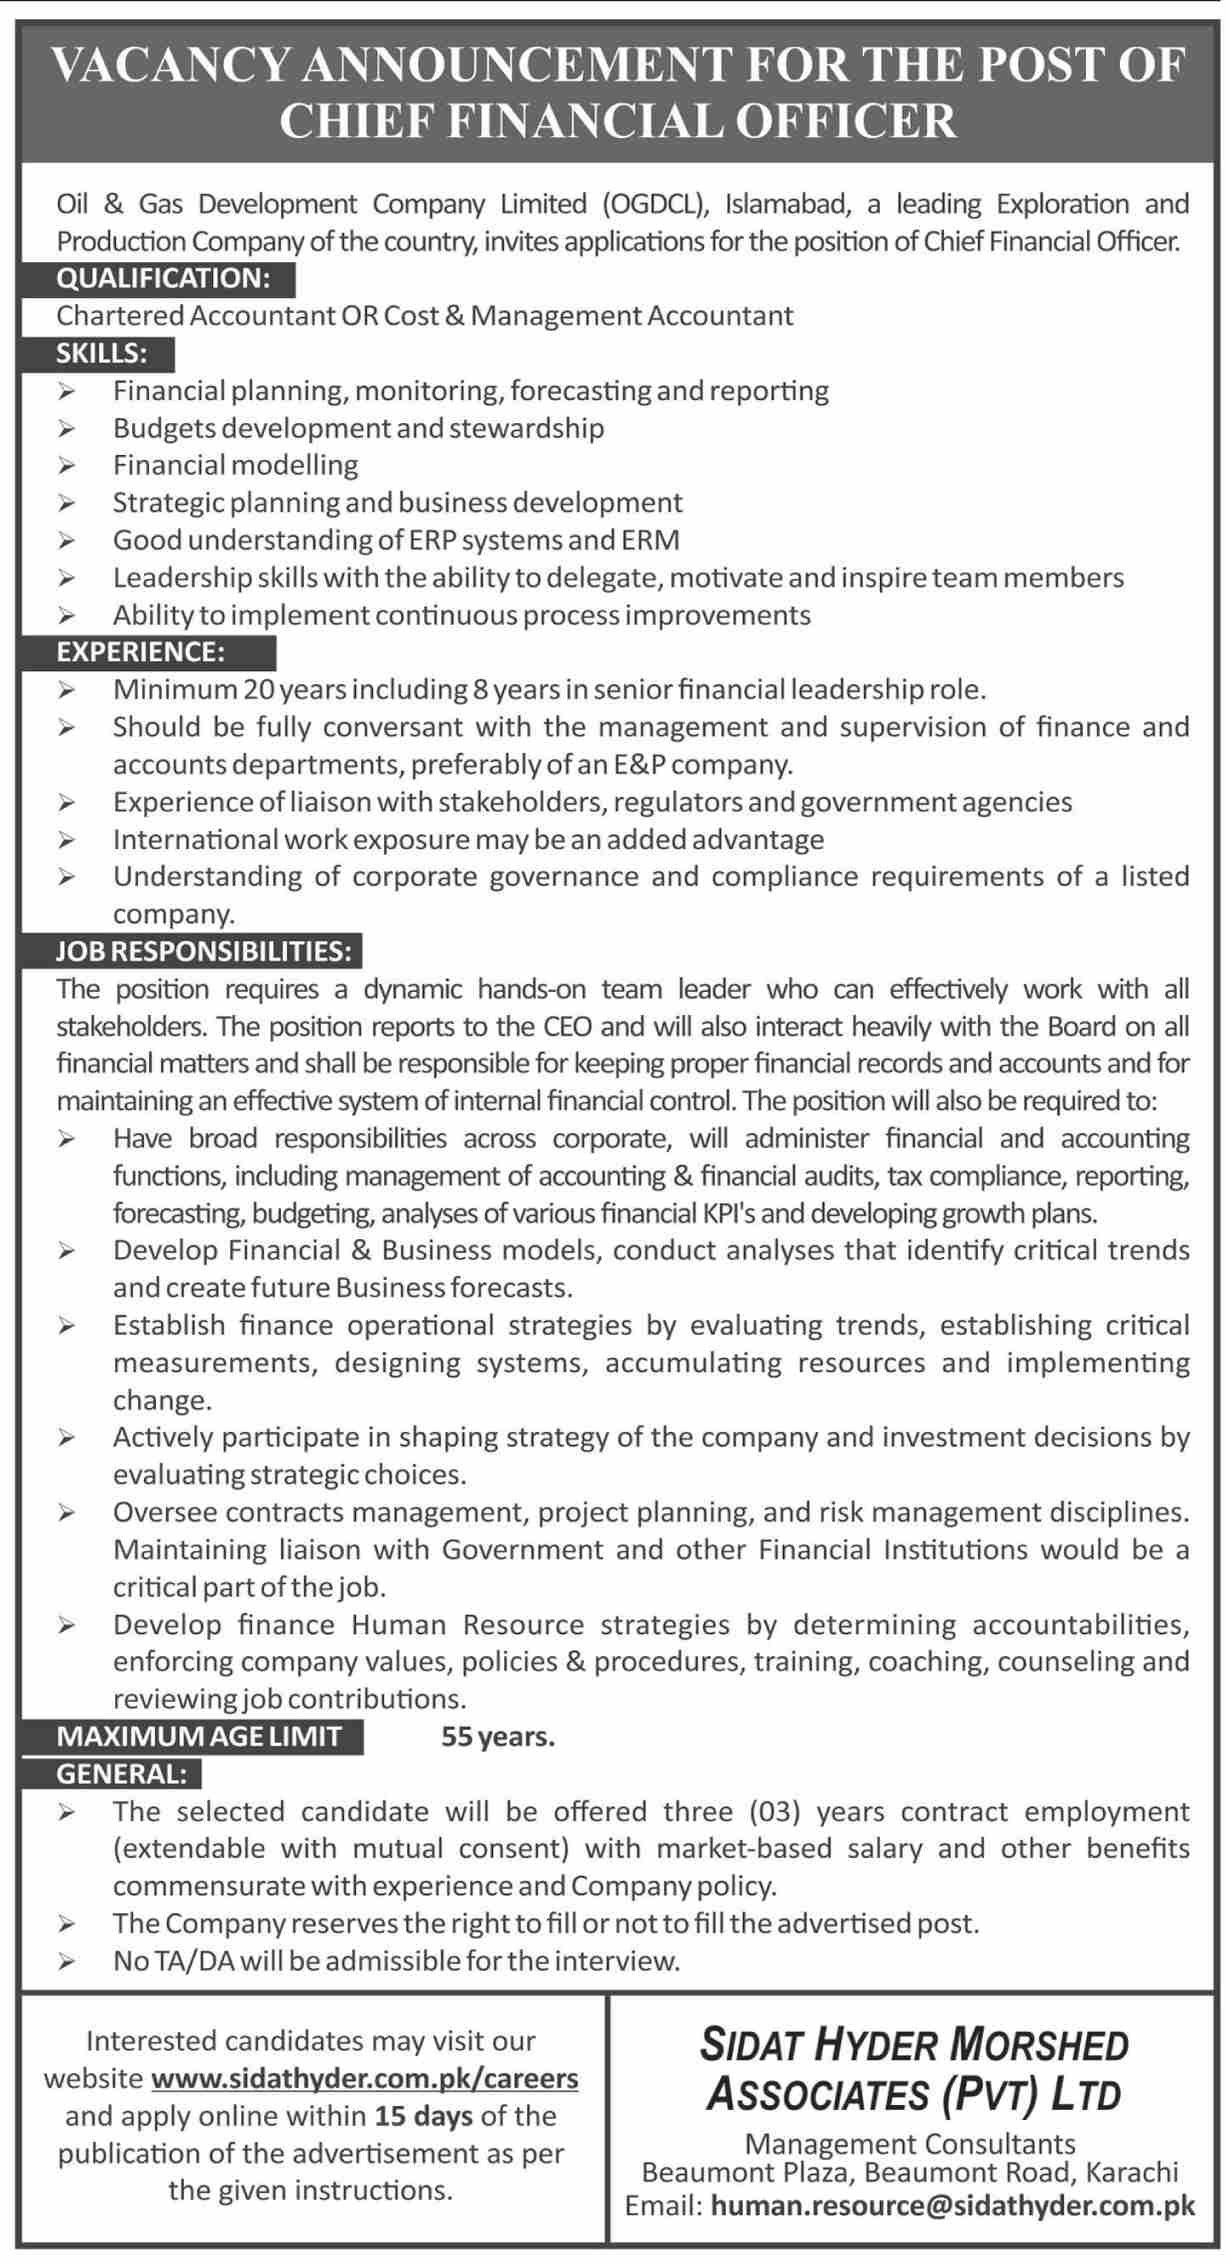 Oil & Gas Development Company Limited Jobs October 2021